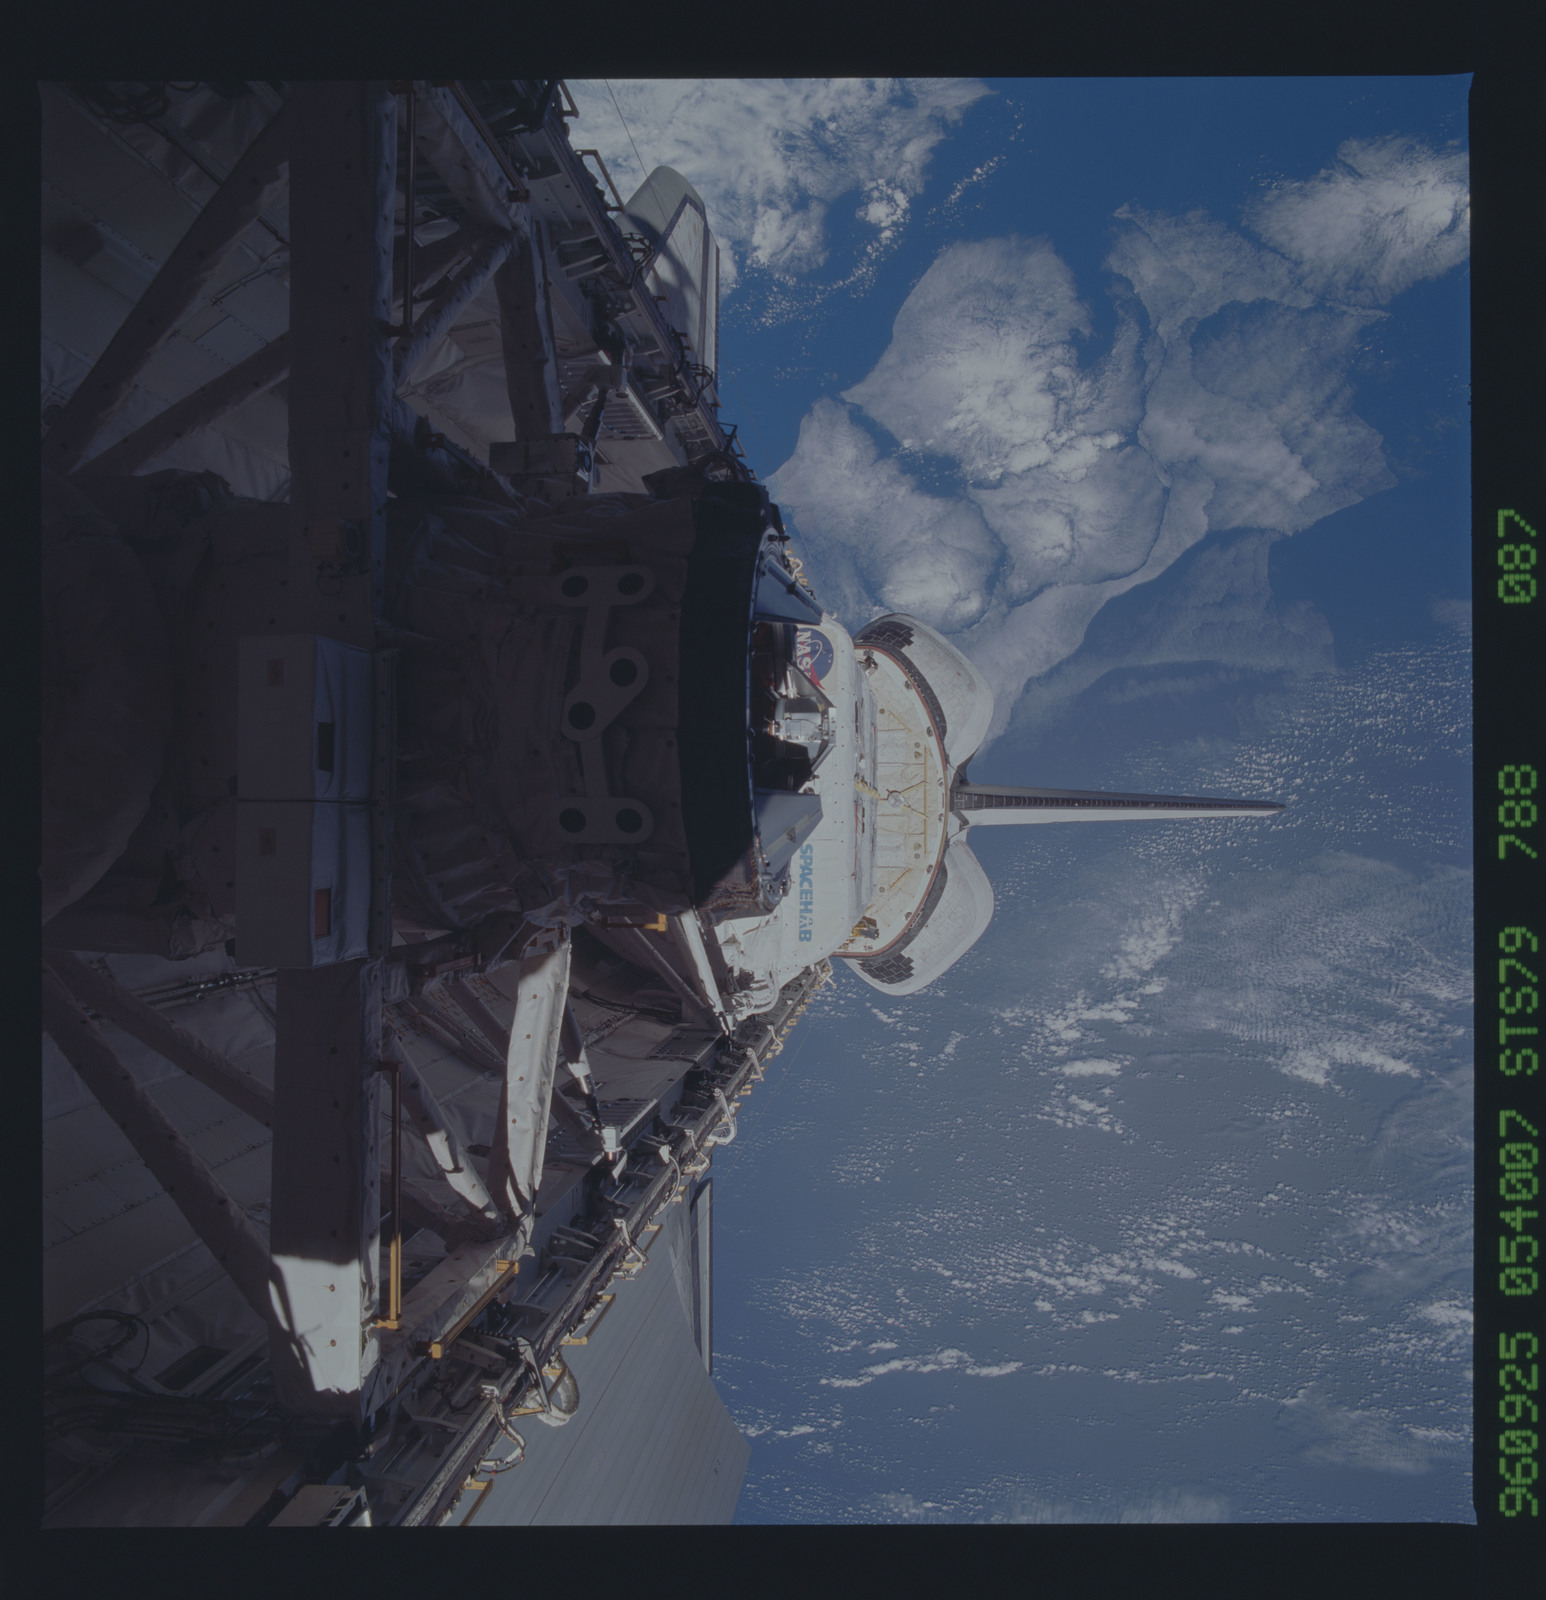 STS079-788-087 - STS-079 - ODS in Atlantis payload bay after undocking with Mir